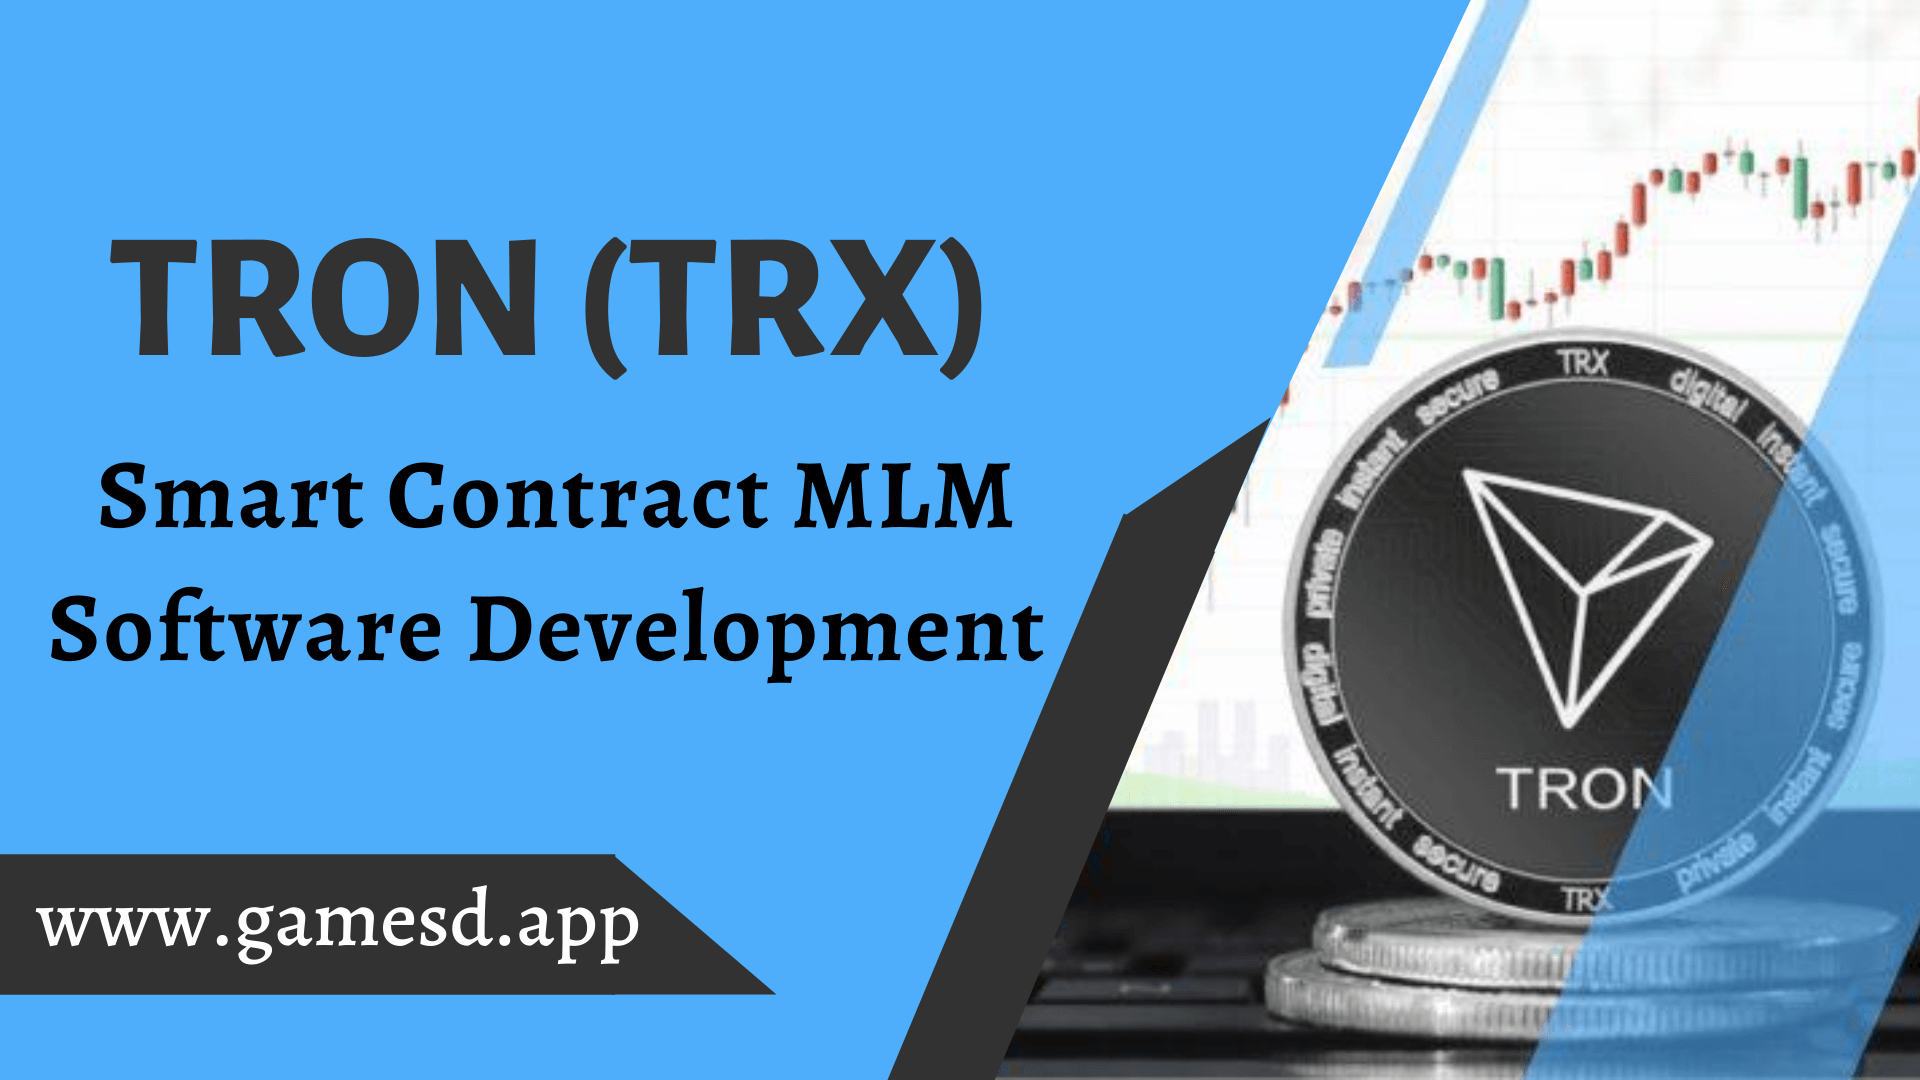 TRON Smart Contract MLM Software to Build Decentralized Smart Contract MLM Business on Tron blockchain